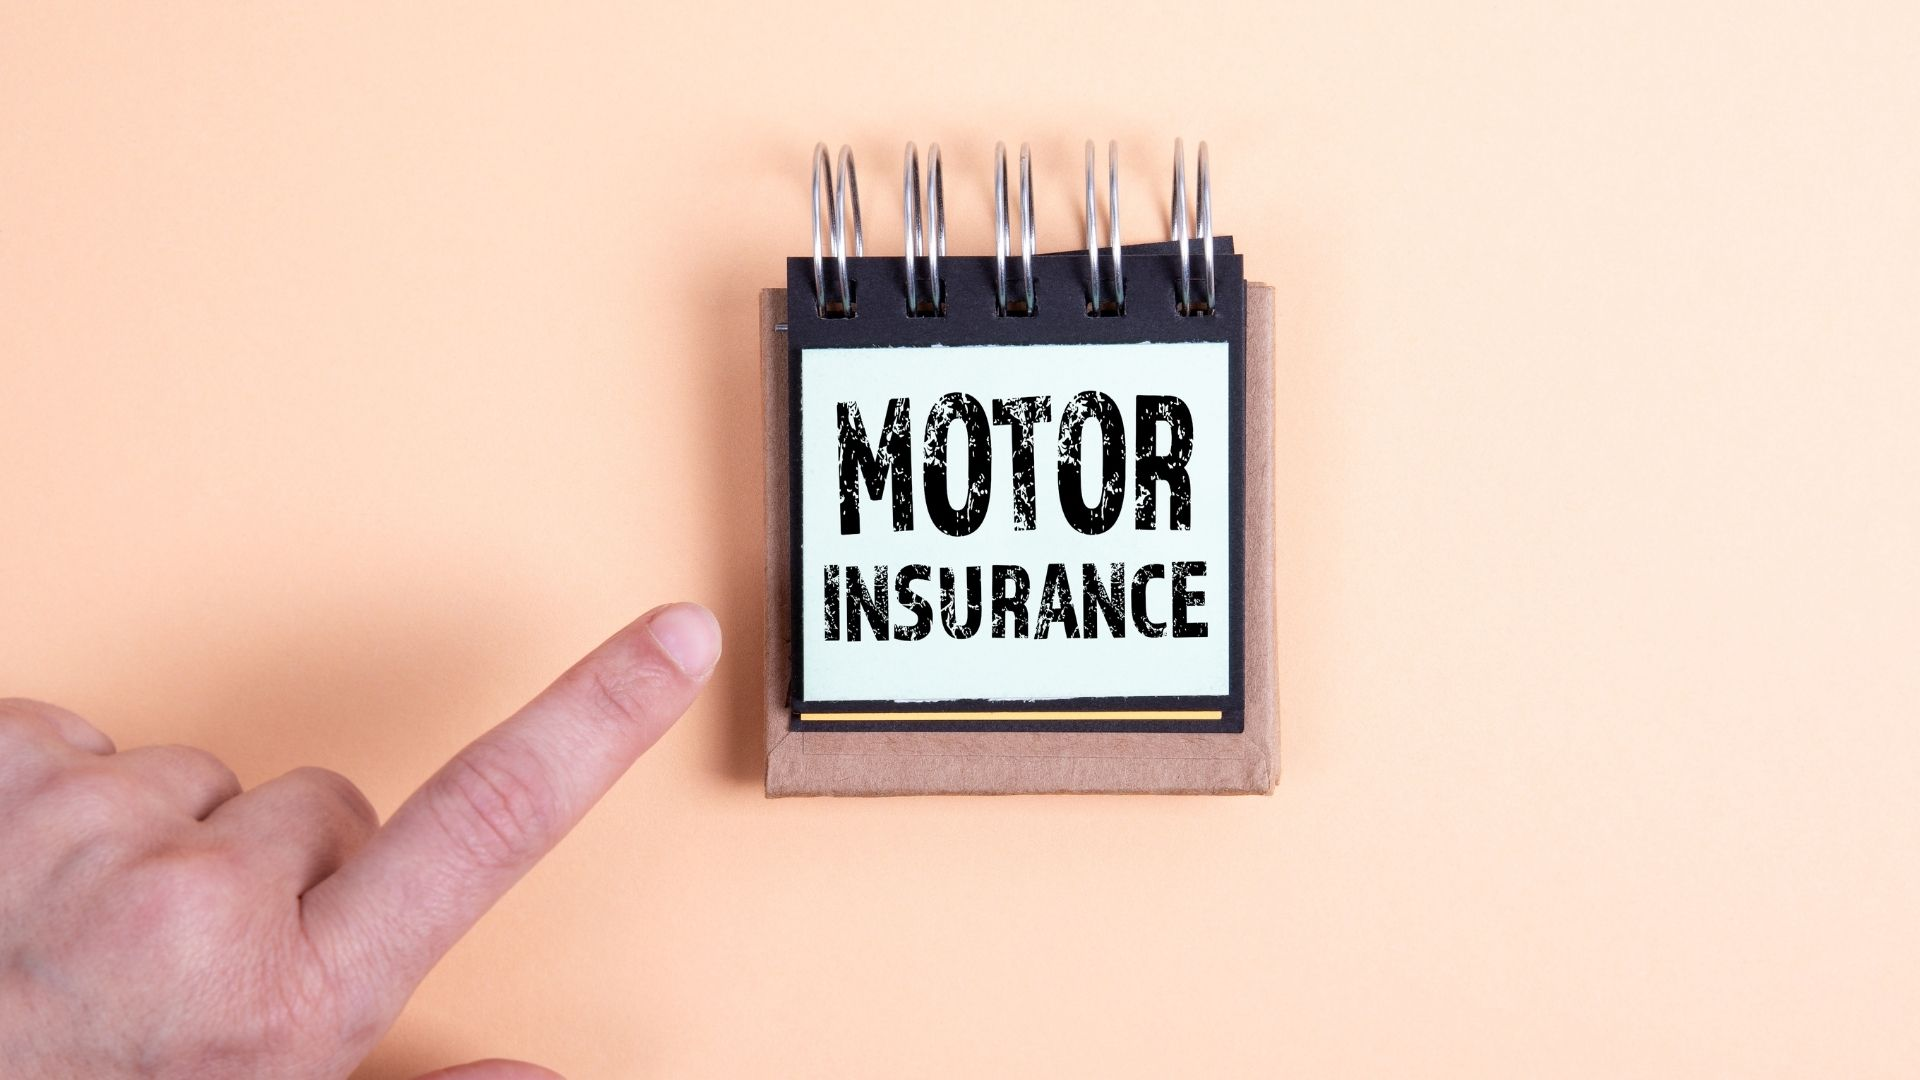 2020: The paradoxical year that has reshaped the future of motor insurance and related sectors 38